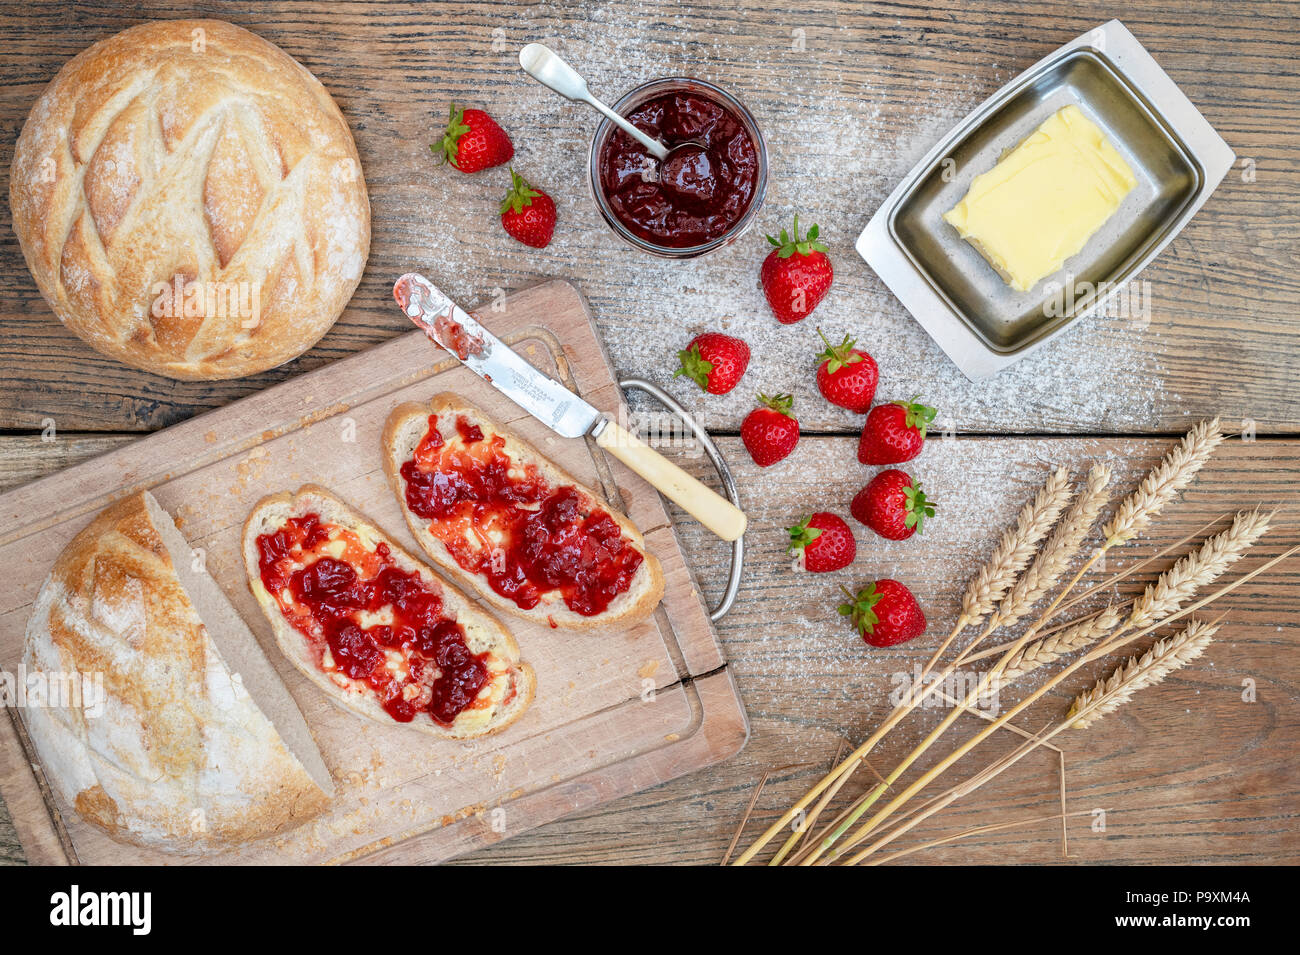 Strawberry jam on bread with wheat and strawberries on a wood background - Stock Image